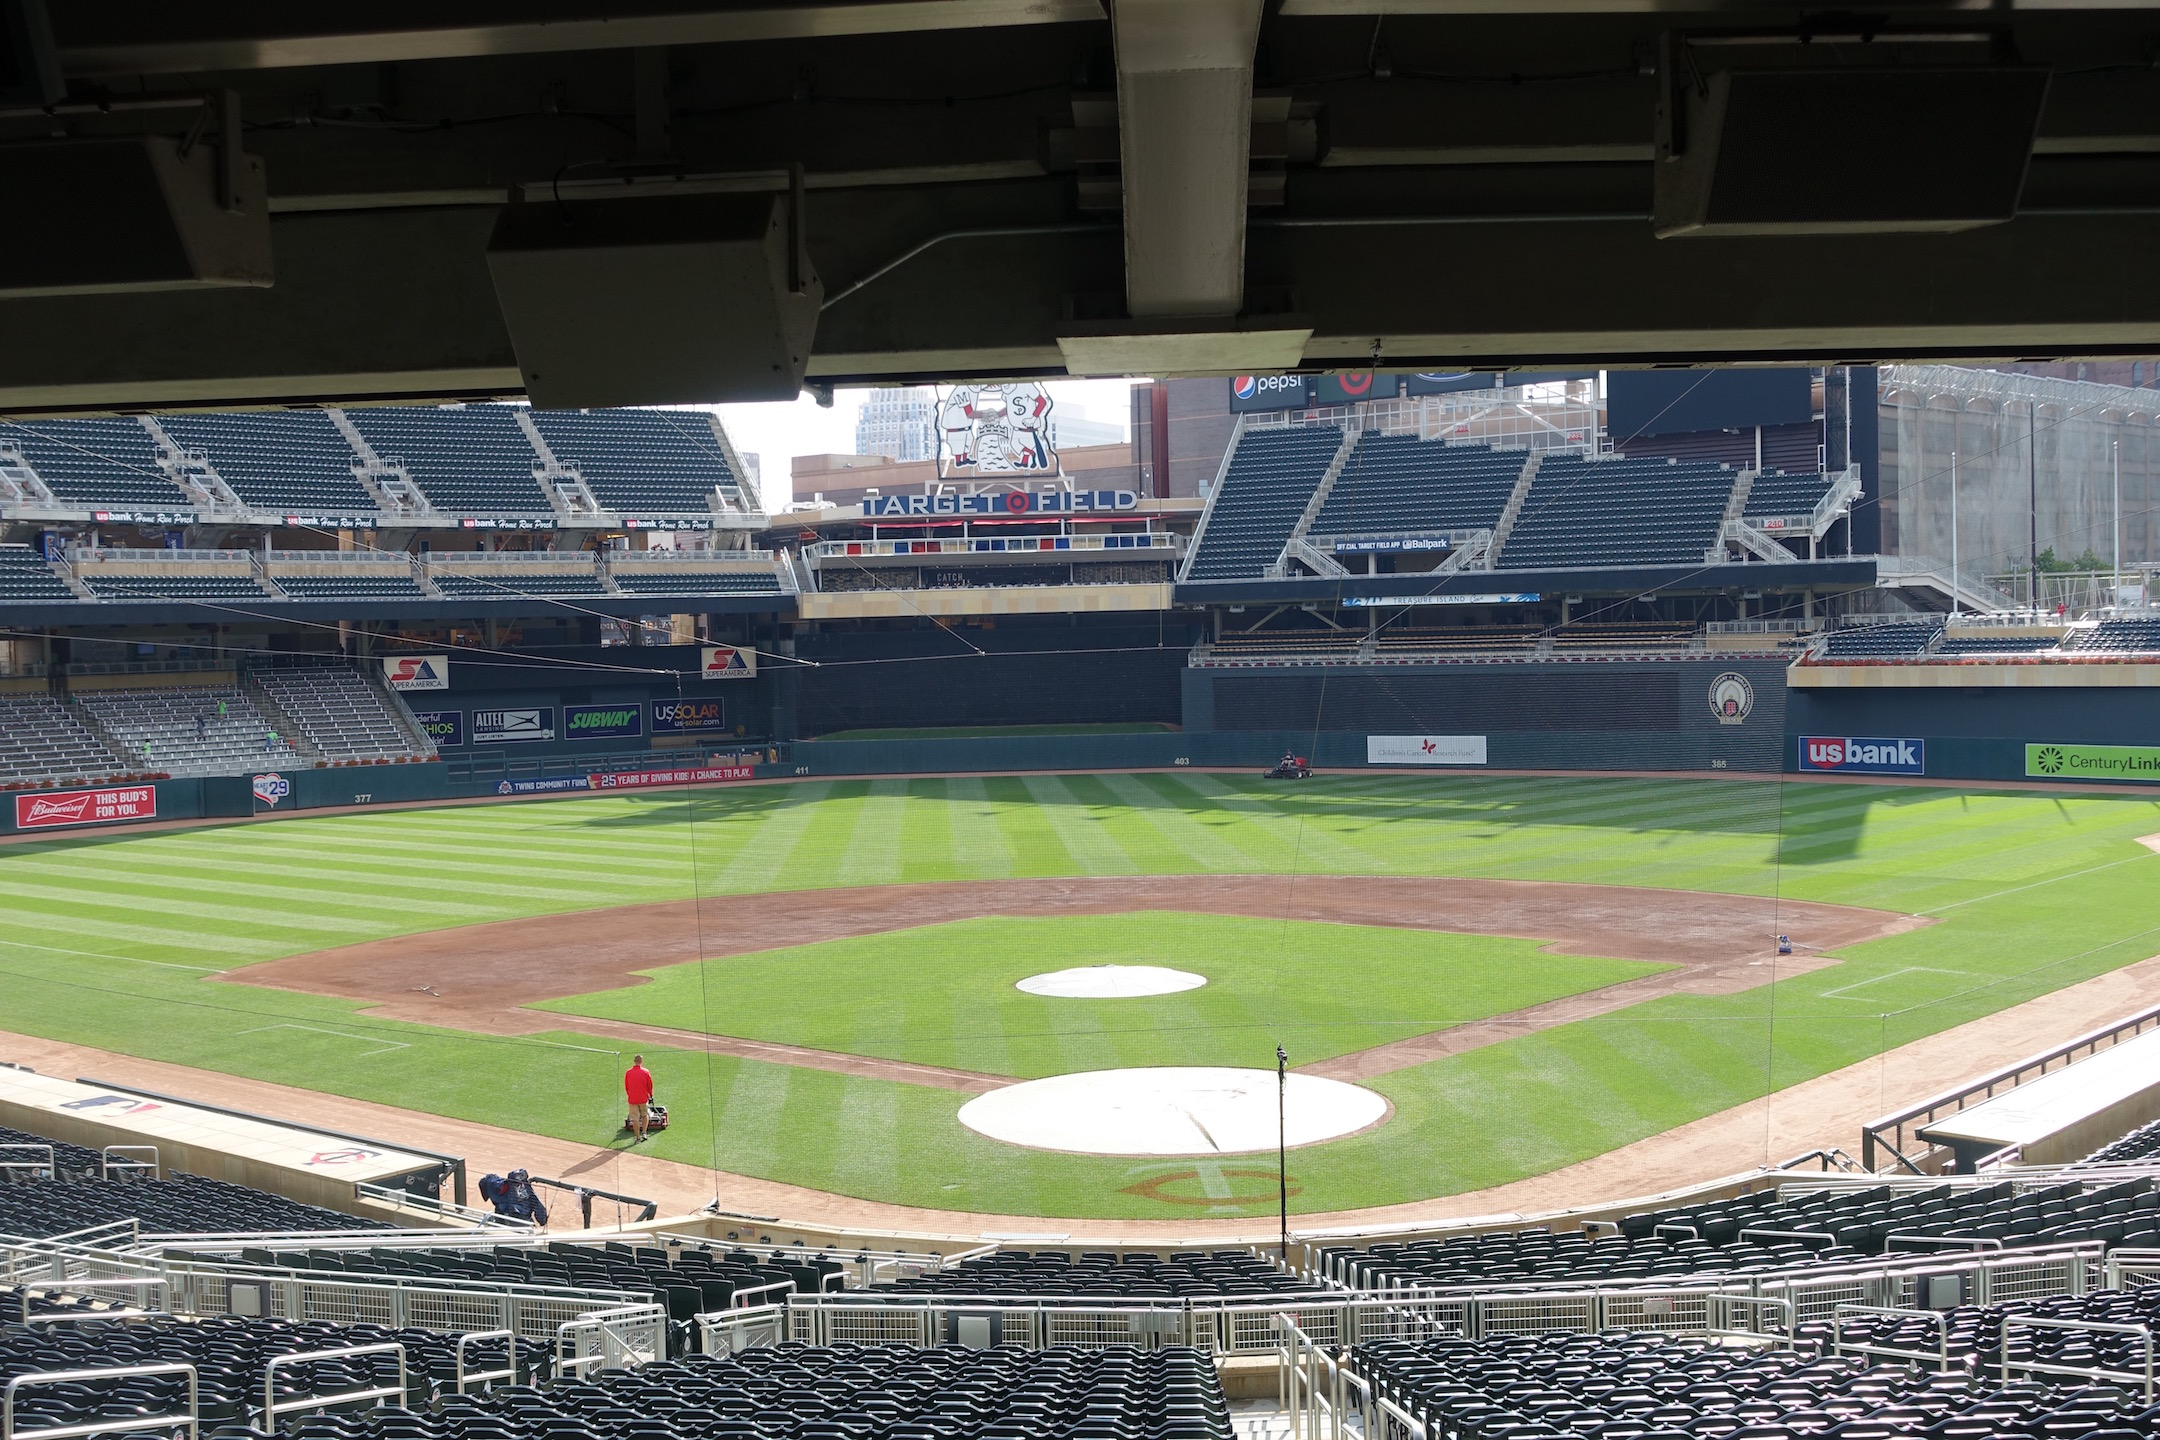 Target Field was mostly quiet while the grounds crew prepped for the game. Photo Credit: Ryan Schaal